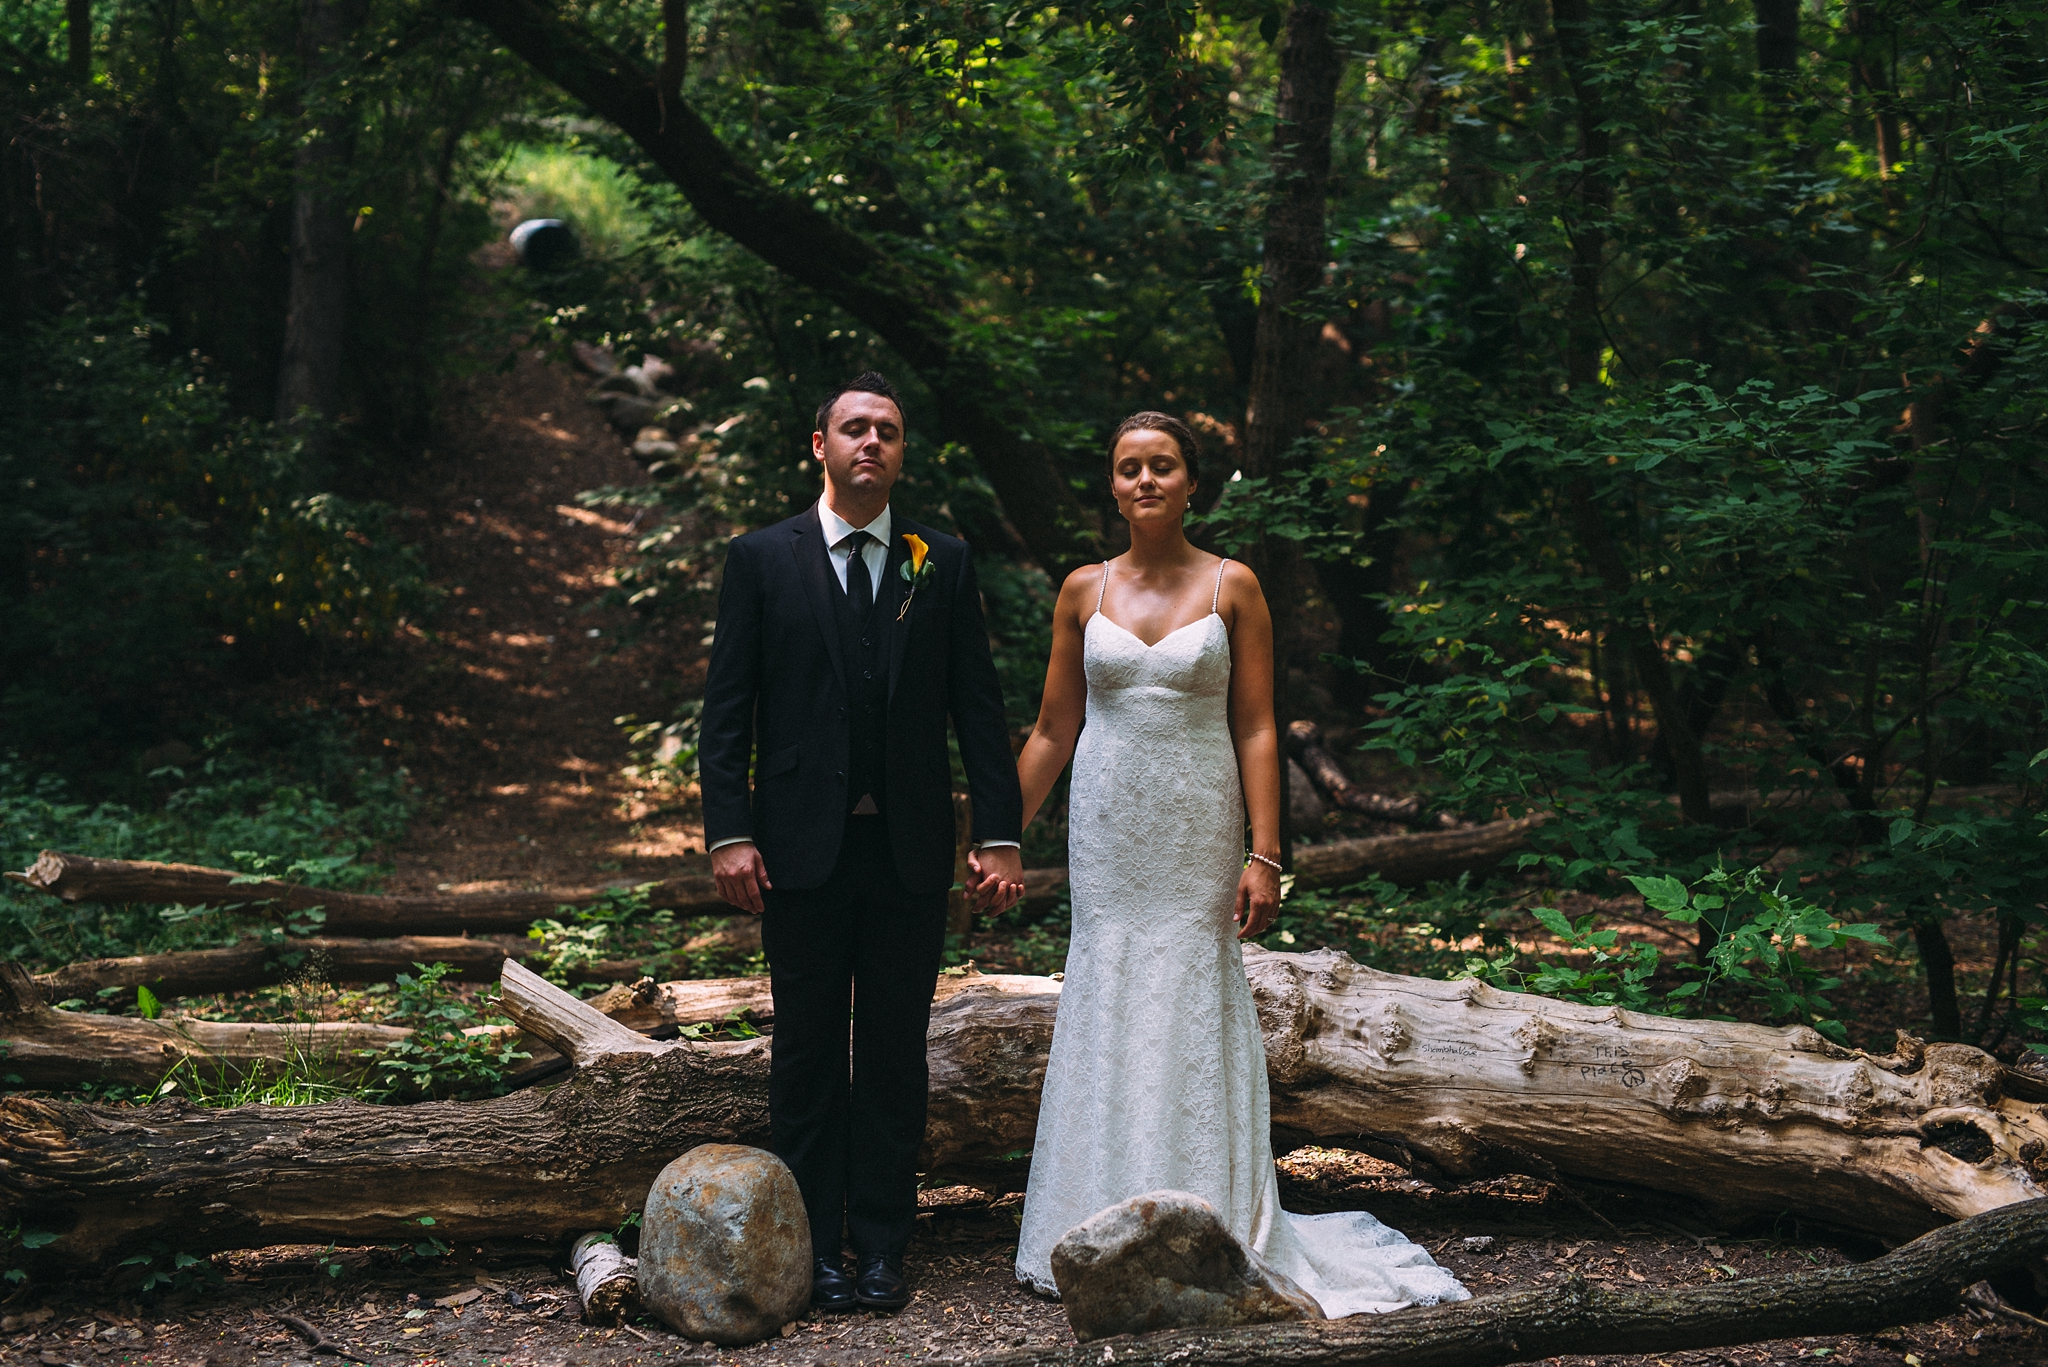 kaihla_tonai_intimate_wedding_elopement_photographer_1981